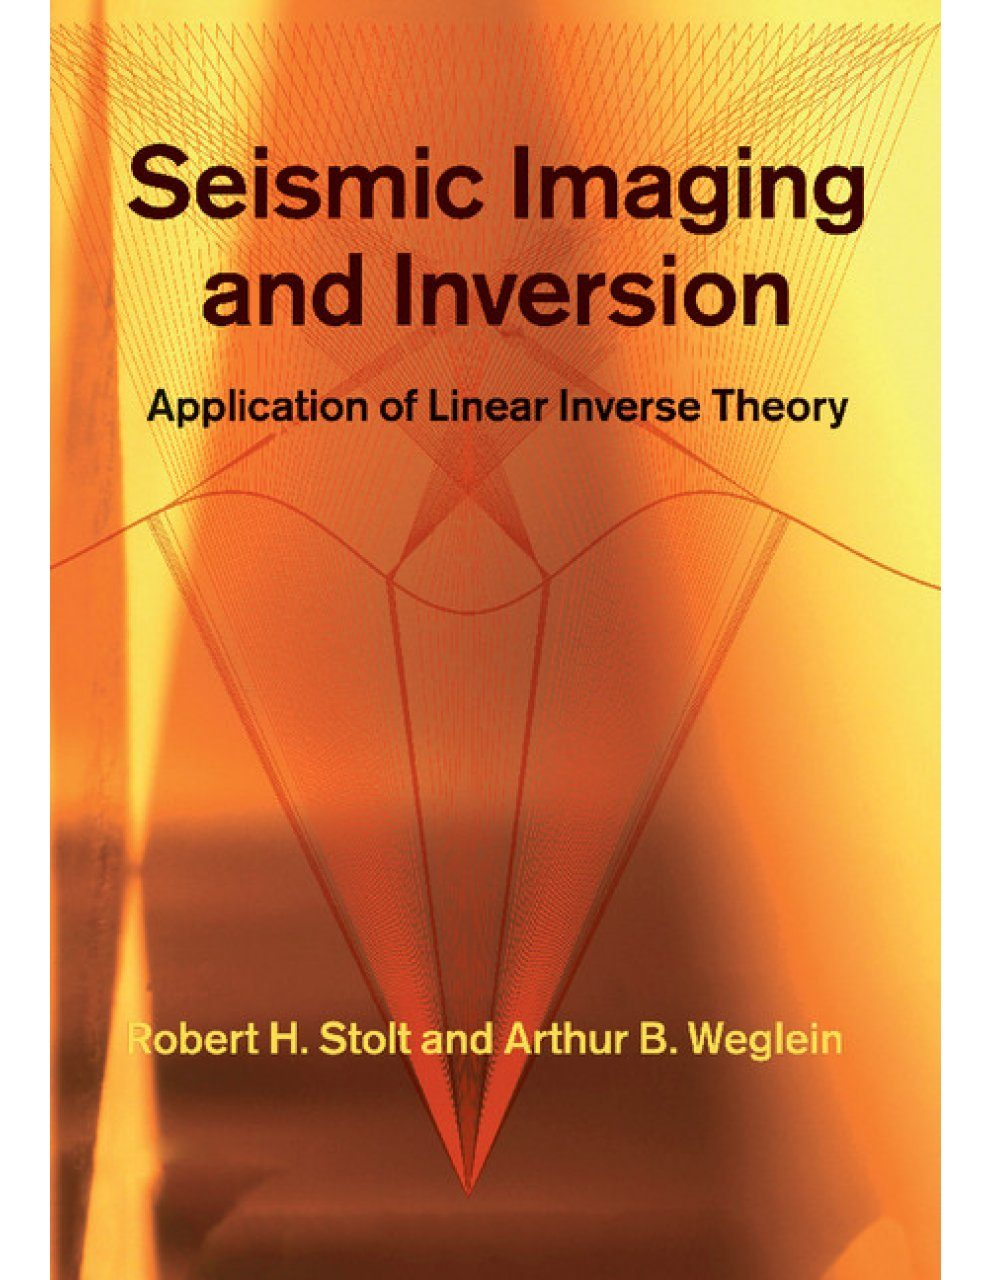 Seismic Imaging and Inversion, Volume 1